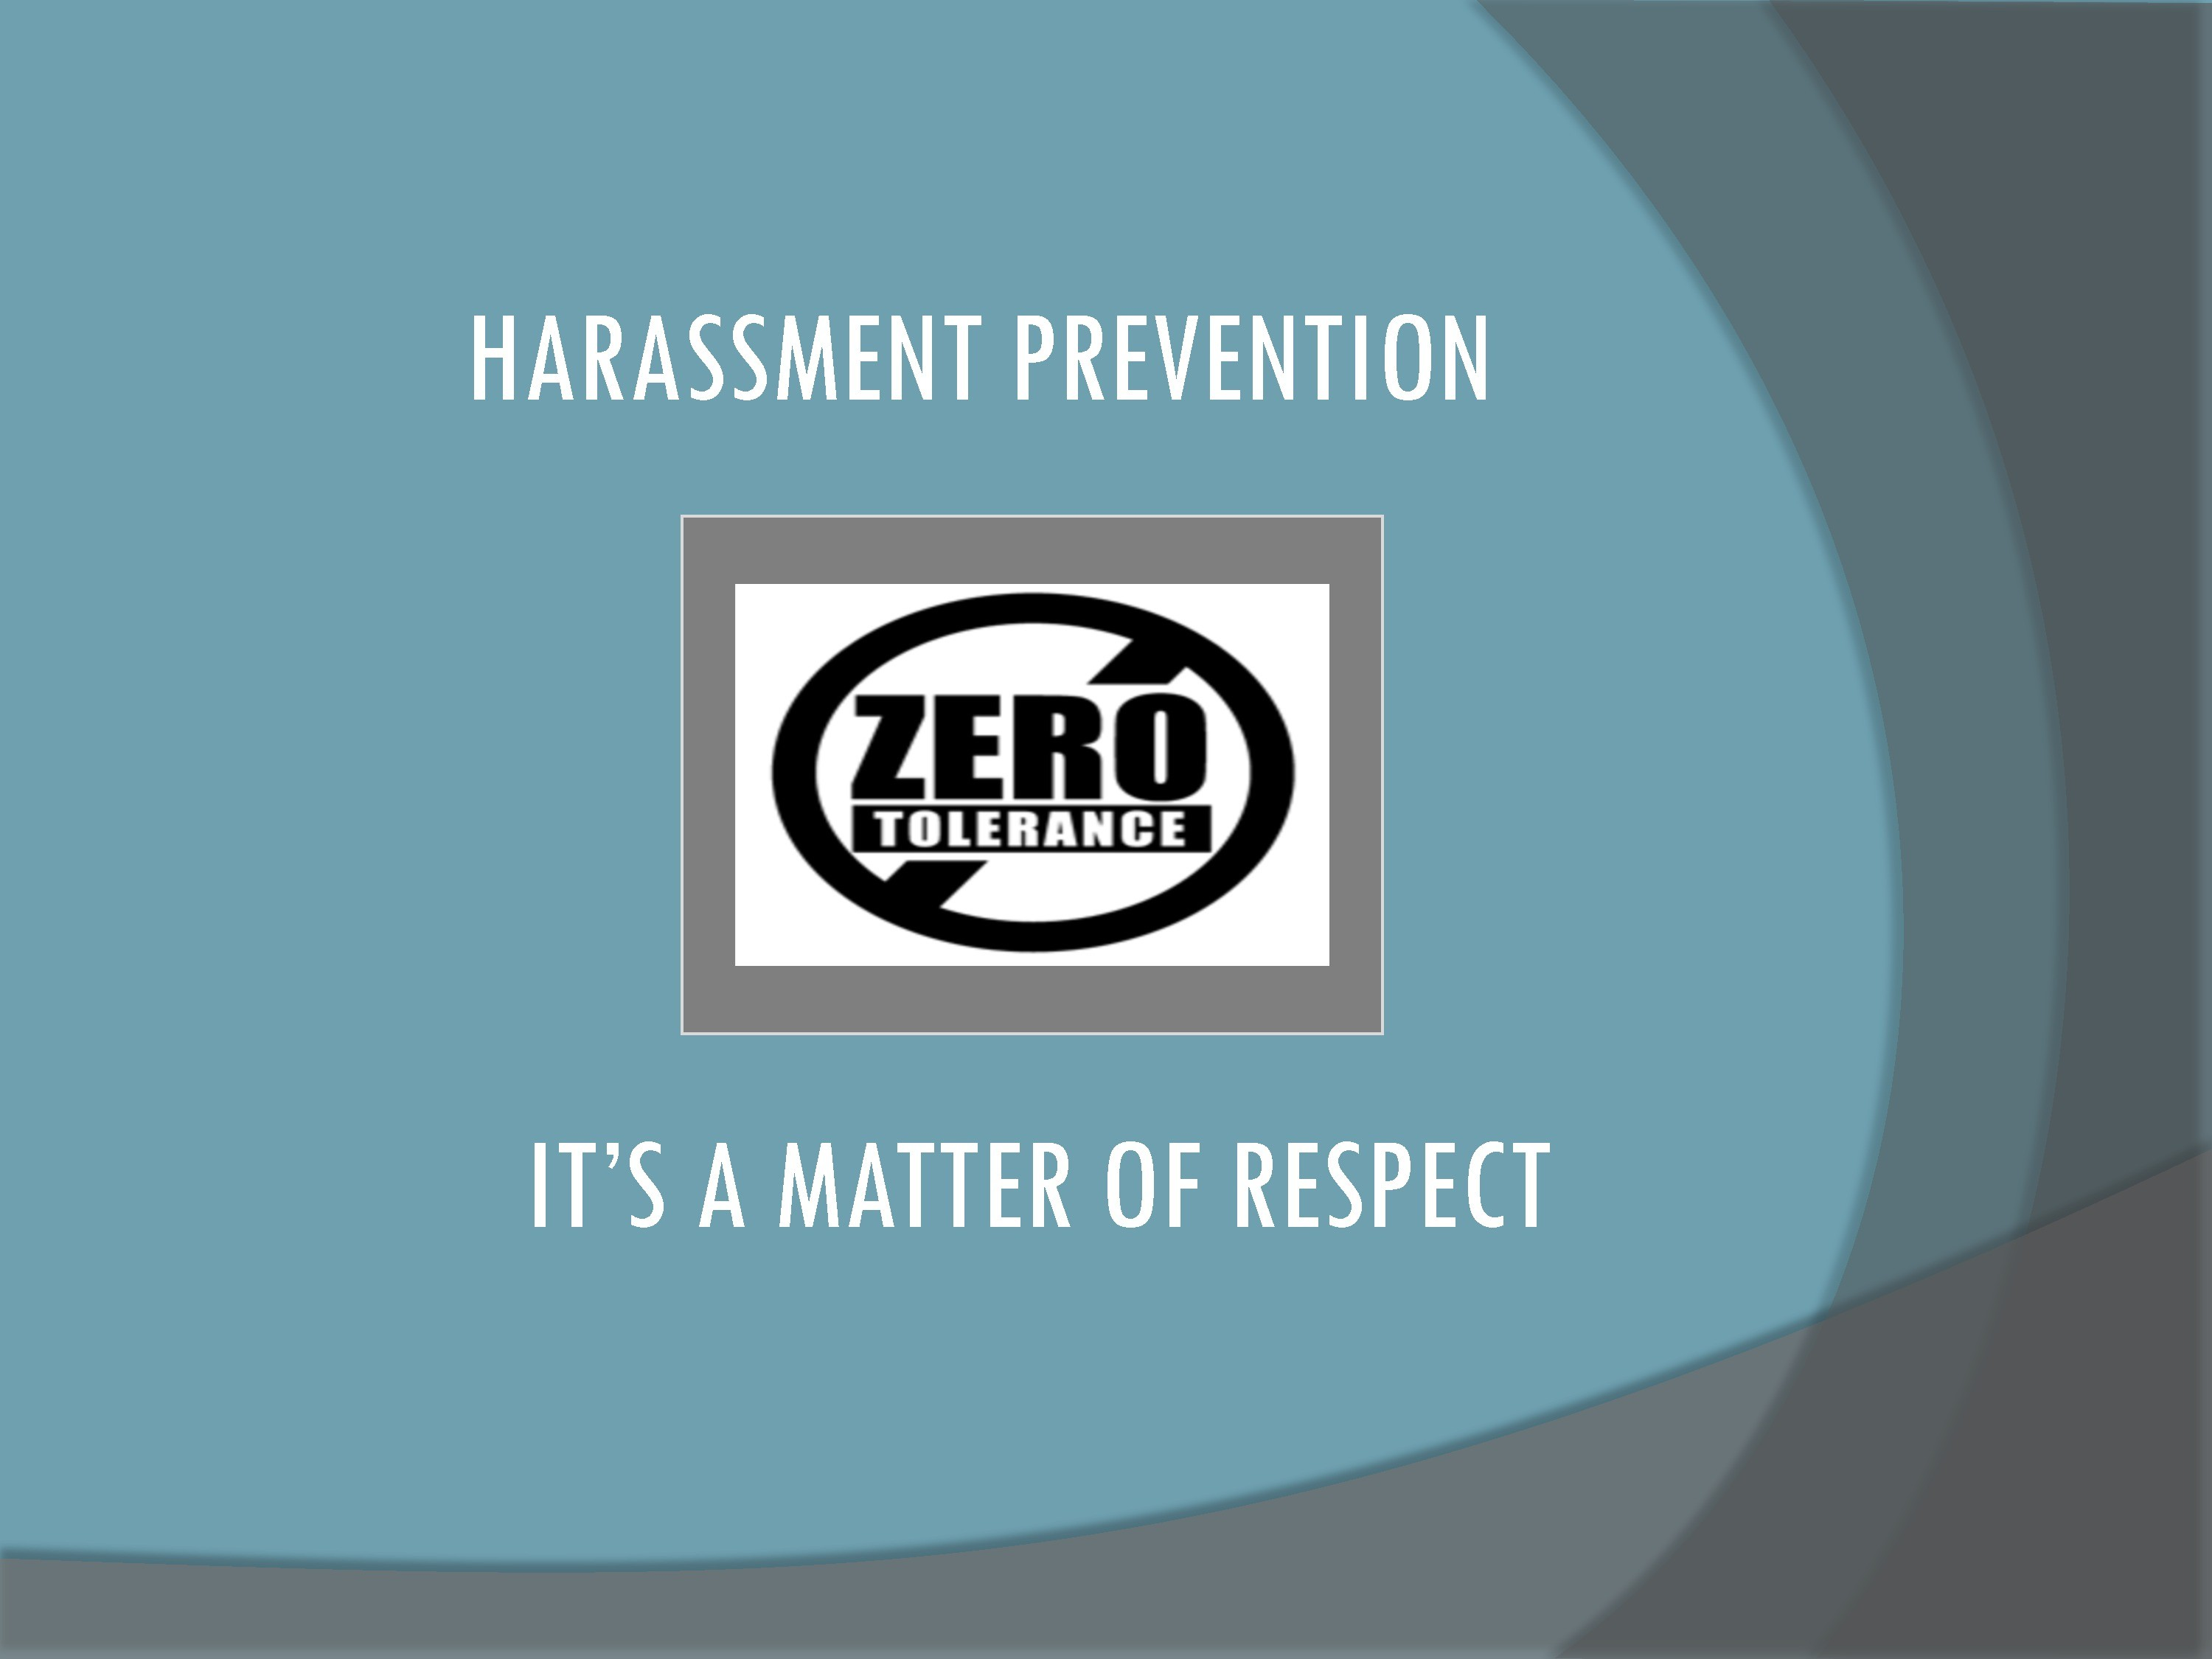 Harassment Prevention: It's A Matter of Respect